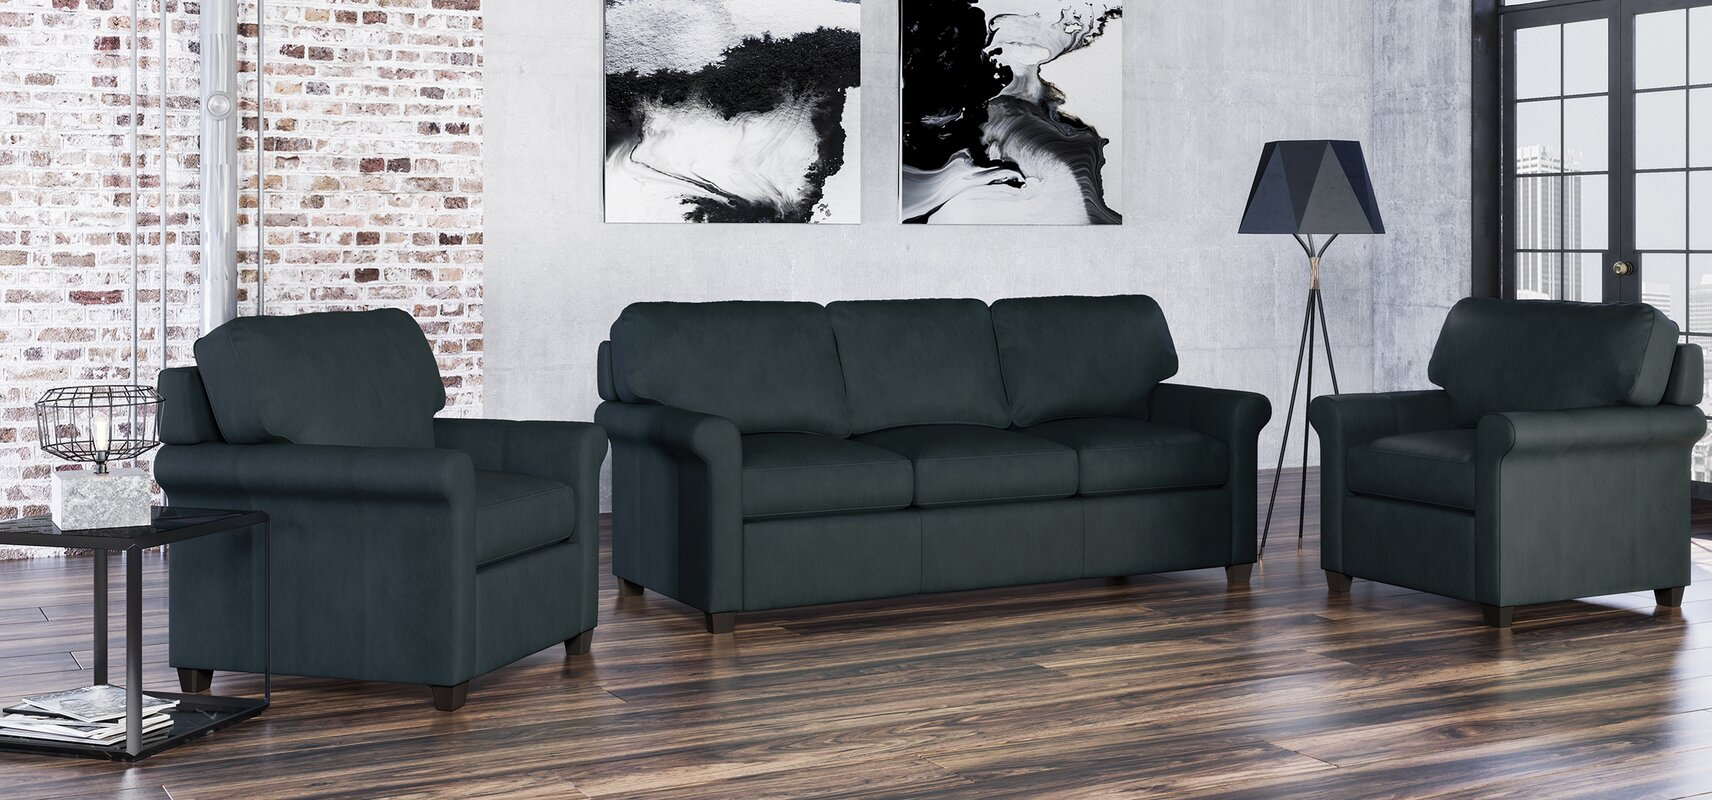 Westland and Birch Menno 3 Piece Leather Living Room Set